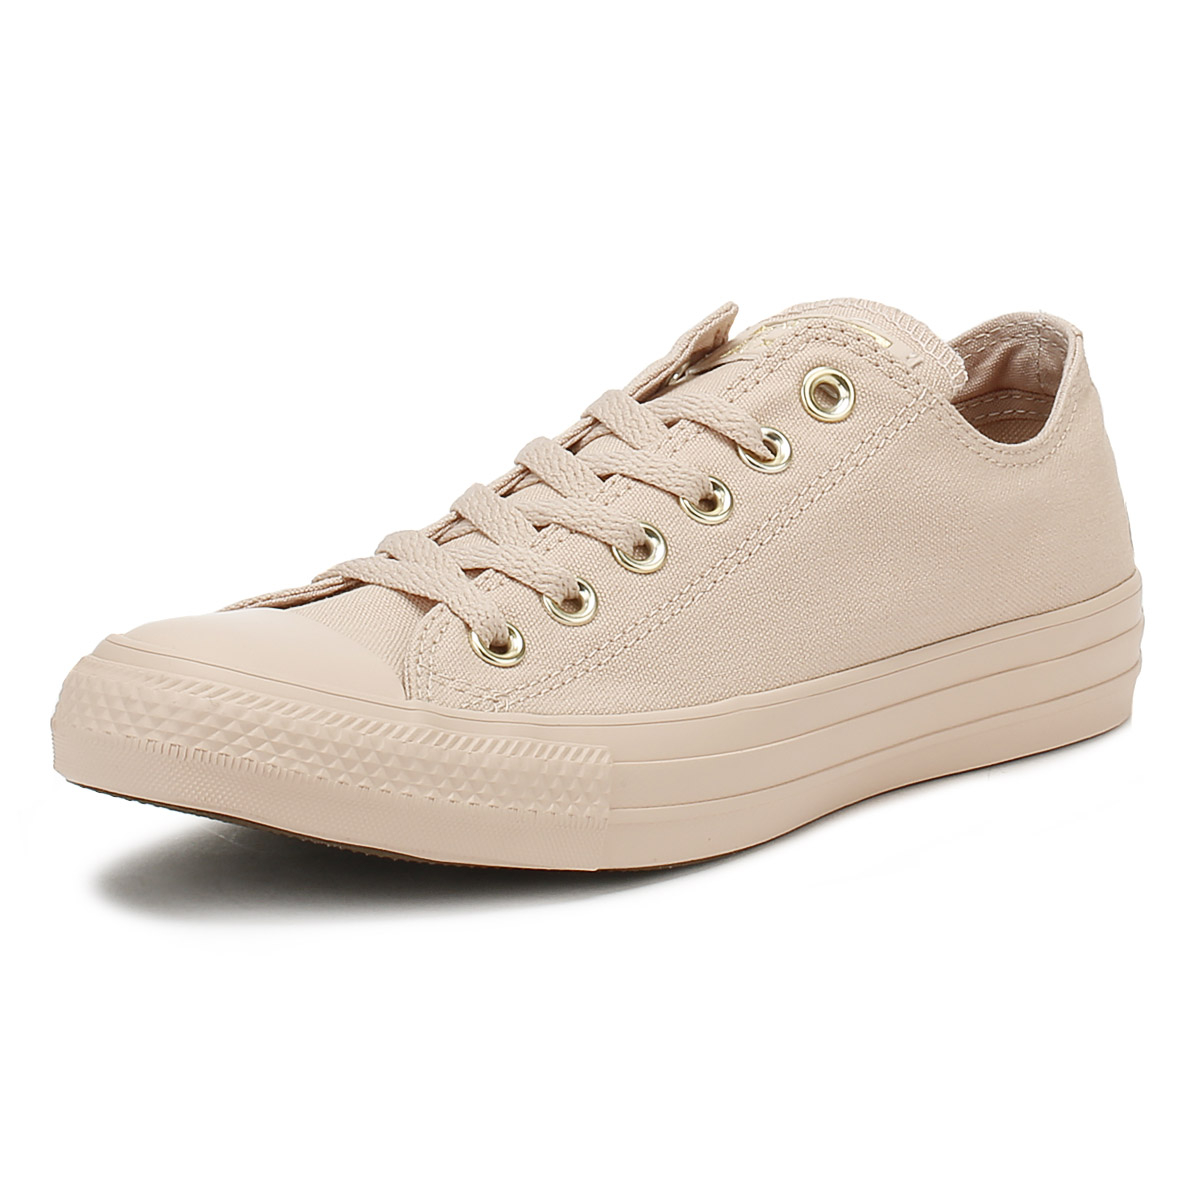 aeeb66fc89ac Details about Converse Chuck Taylor All Star Womens Ox Trainers Particle  Beige Lace Up Shoes